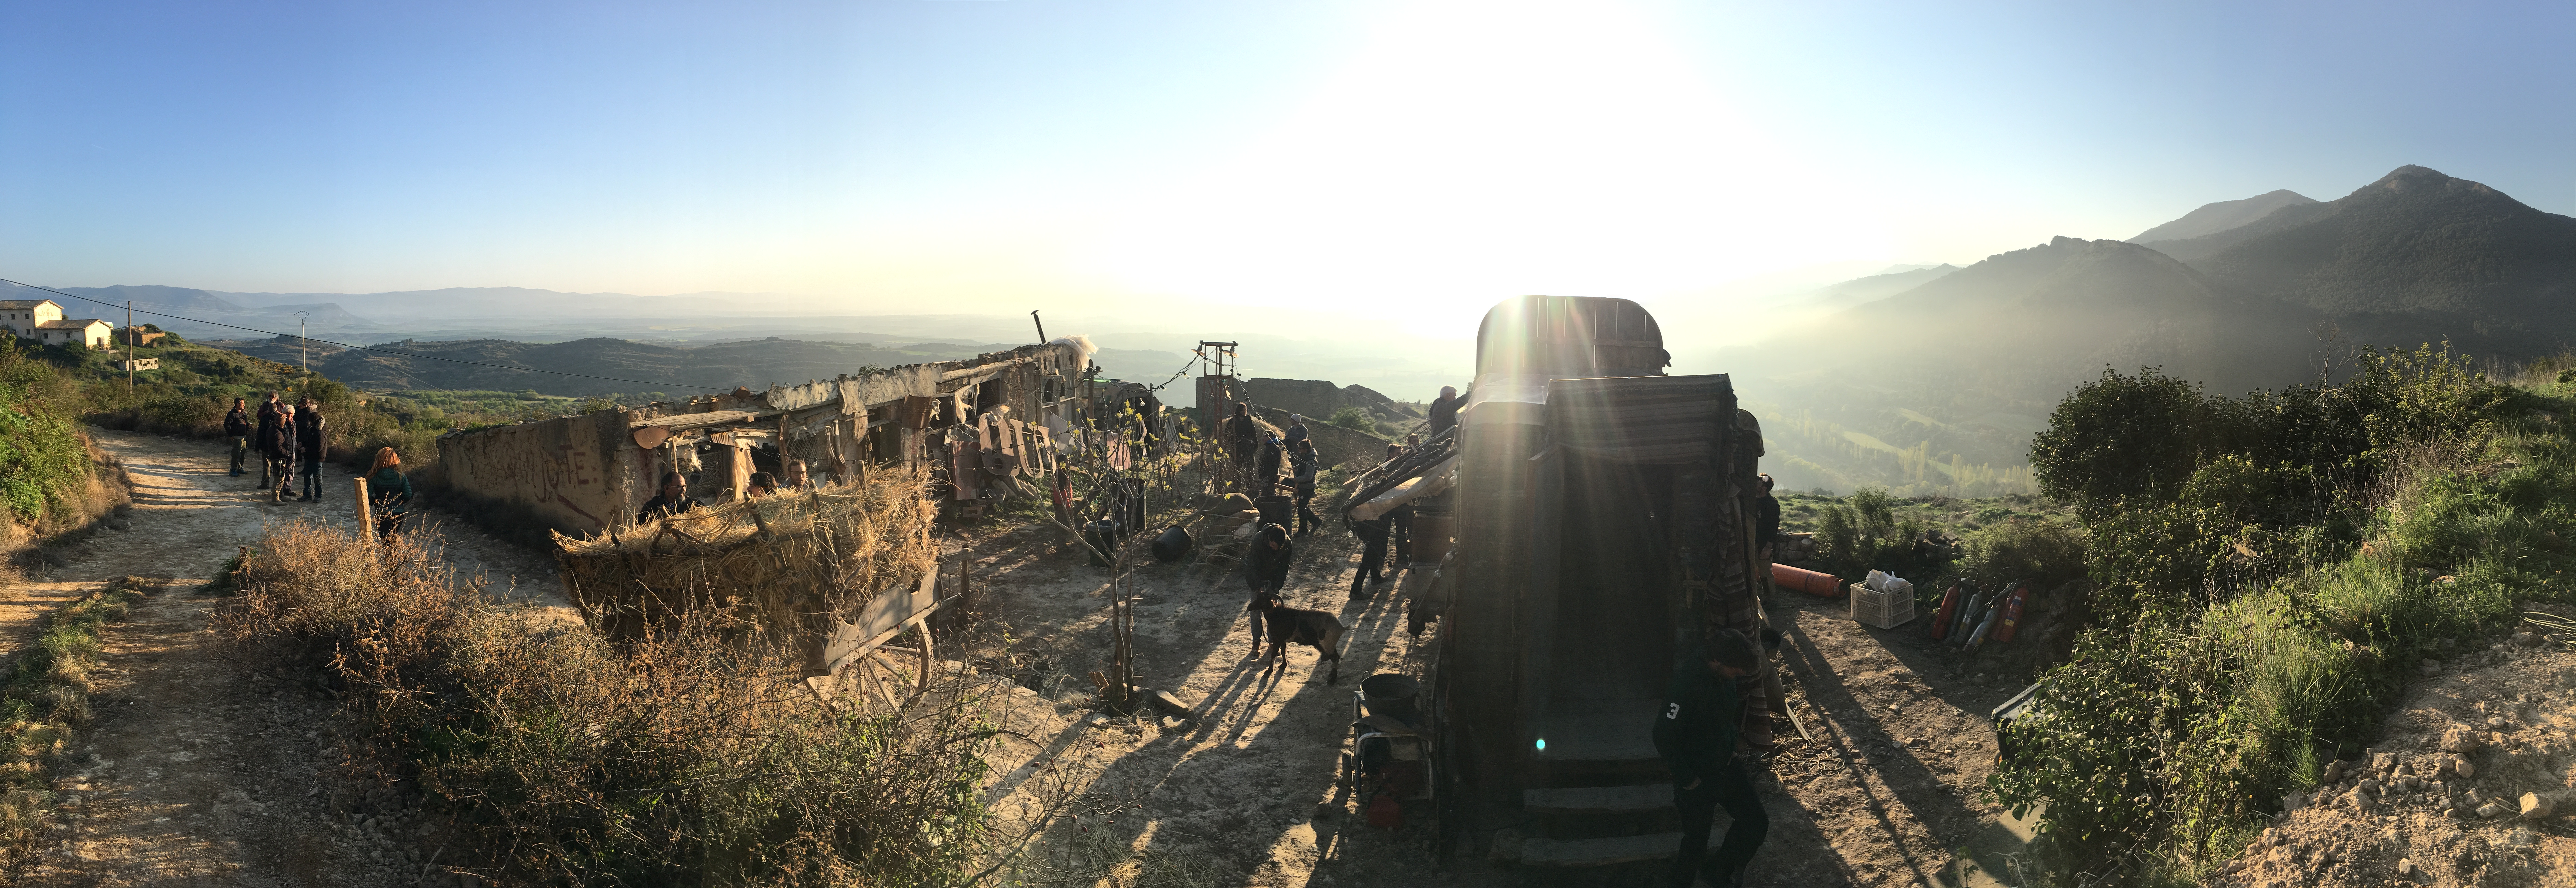 The Man Who Killed Don Quixote, Behind the Scenes, Spain, Portugal, Filming, Film, Locations, News, Article, Interview, Location Manager, Terry Gilliam, Cannes, Production, Entertainment, Industry, Movies. Content, Online,